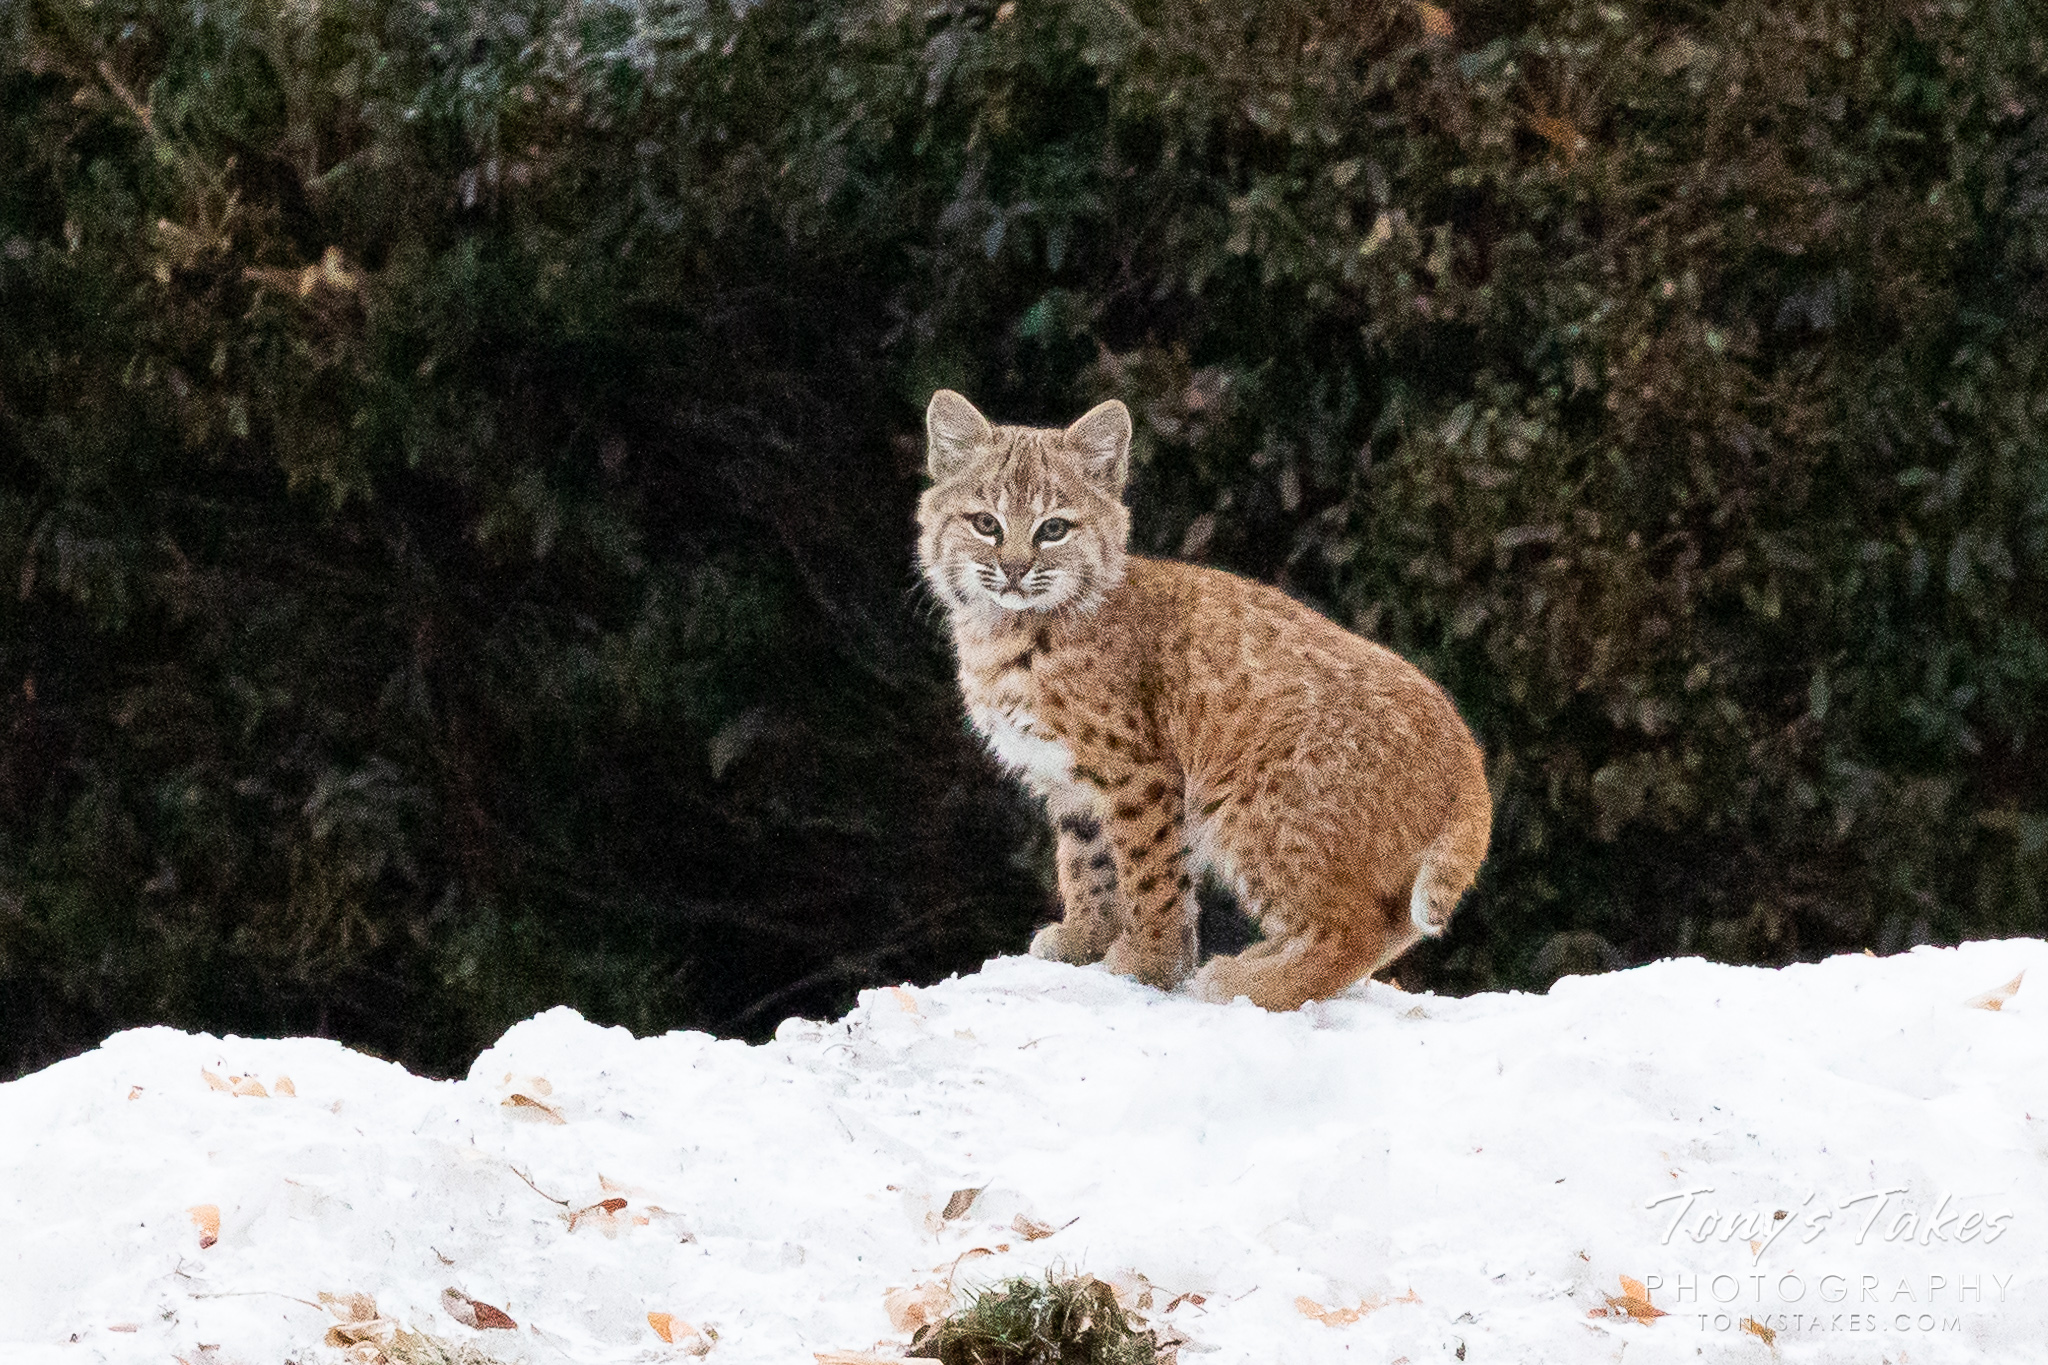 A bobcat kitten keeps watch from a pile of snow. (© Tony's Takes)